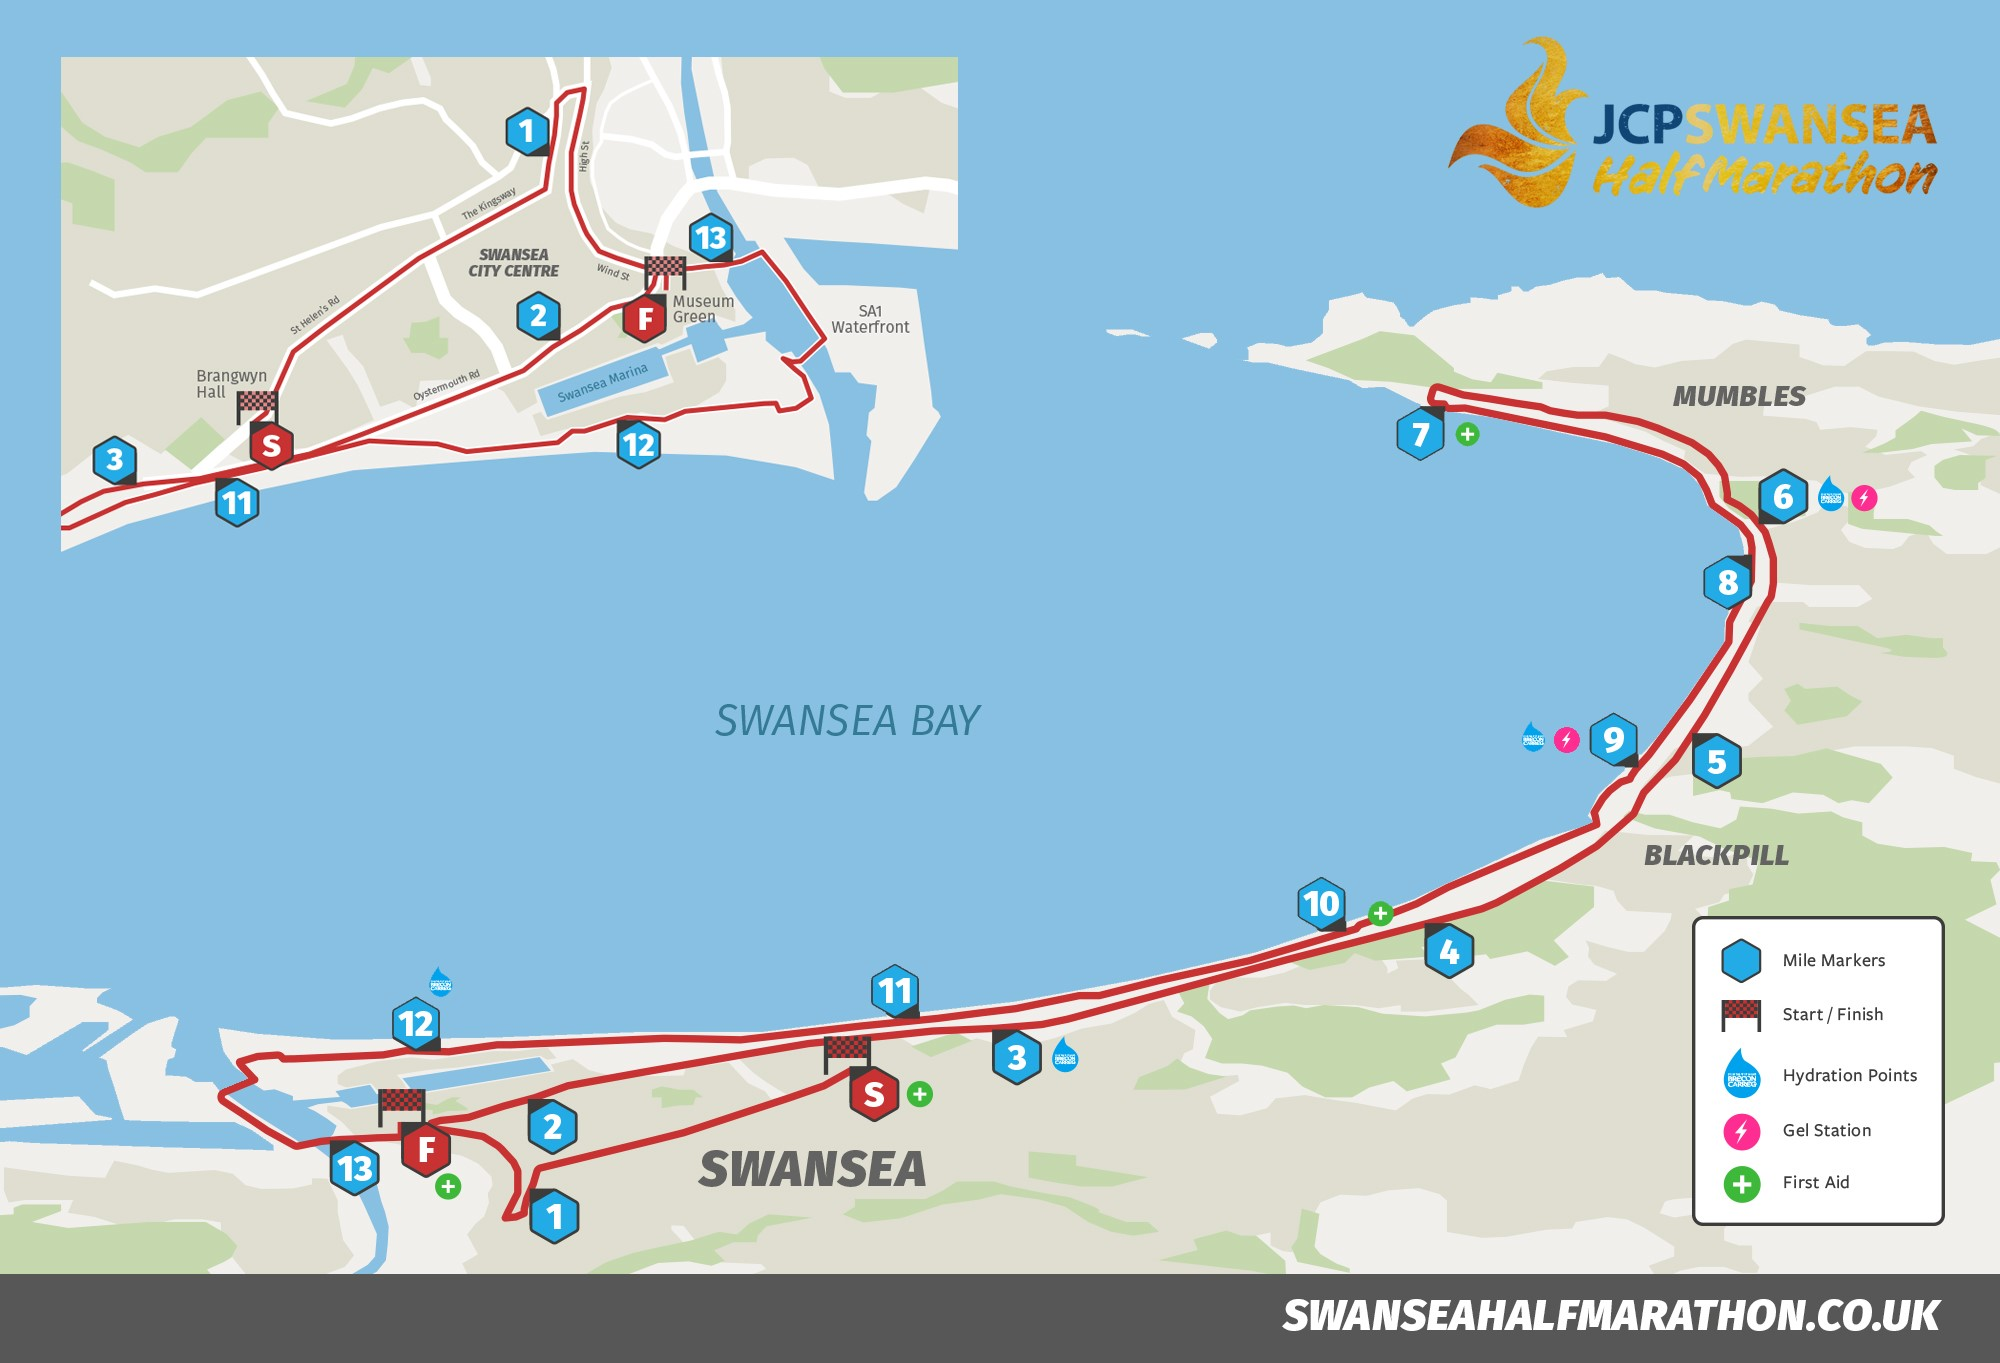 JCP Swansea Half Marathon Announce A Faster Flatter Route for 2018